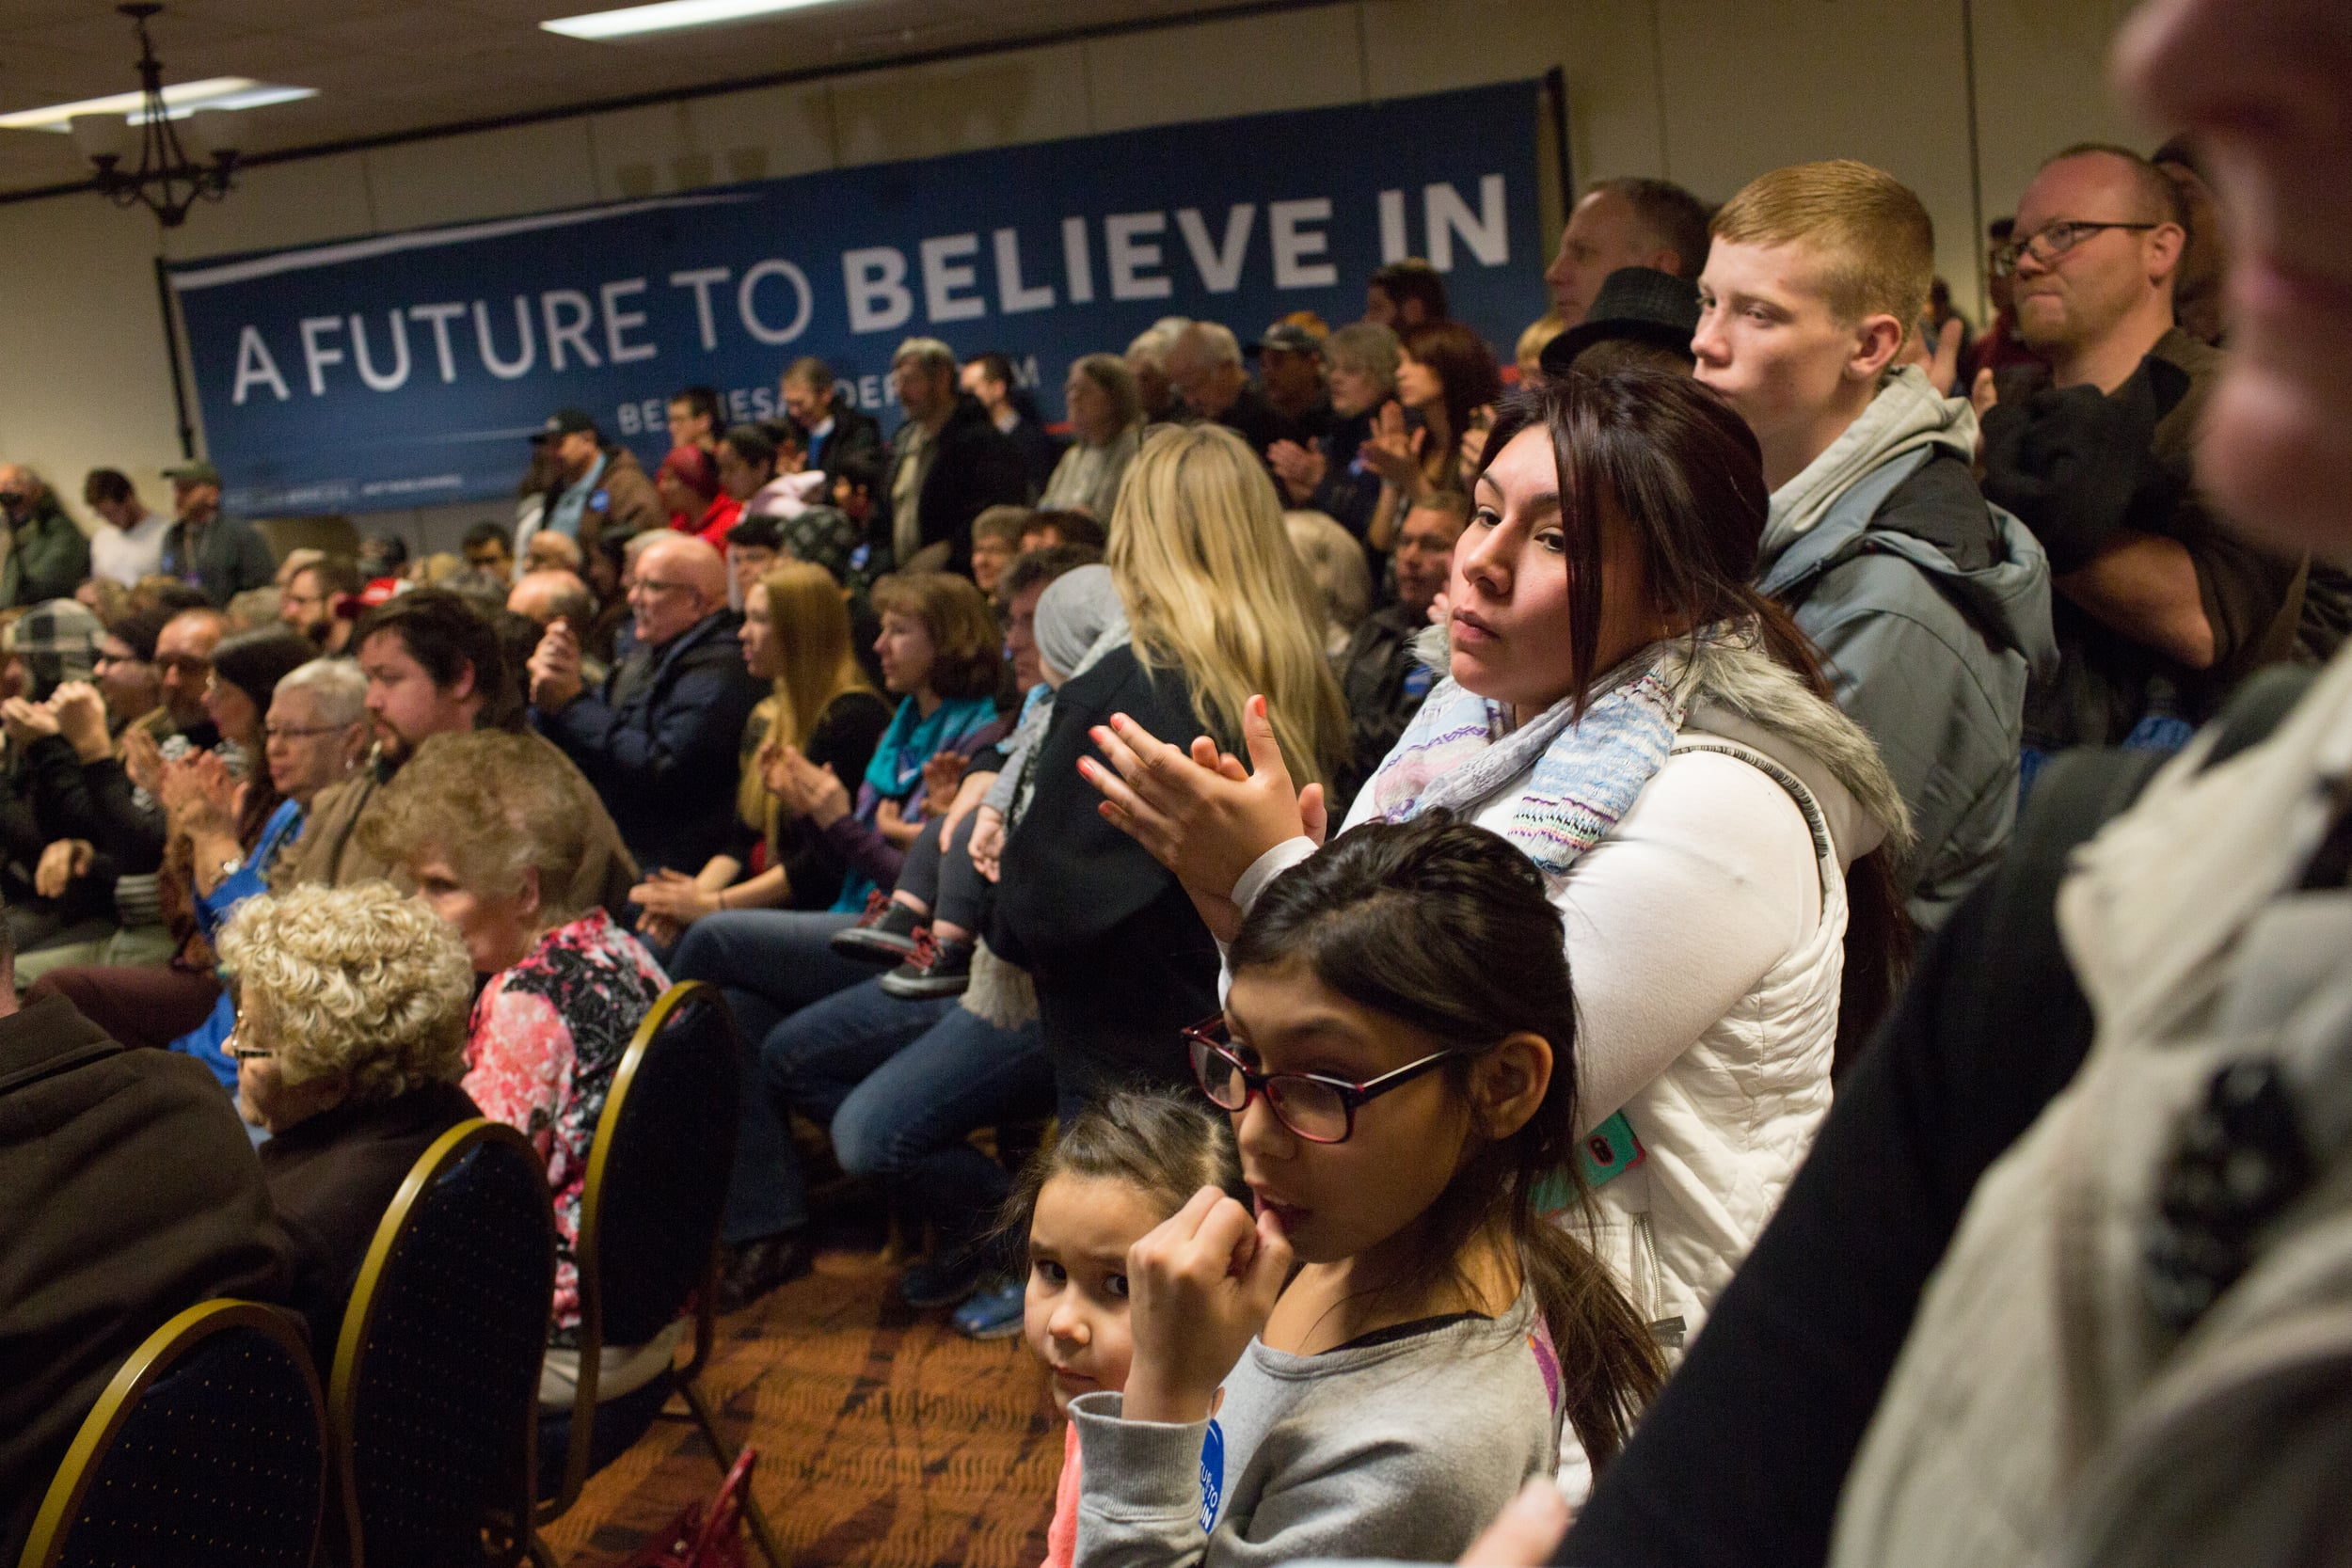 Maria Perez of Marshalltown, Iowa attends a rally for Democratic presidential candidate Bernie Sanders in her town on Sunday. Photograph: John Richard for the Guardian